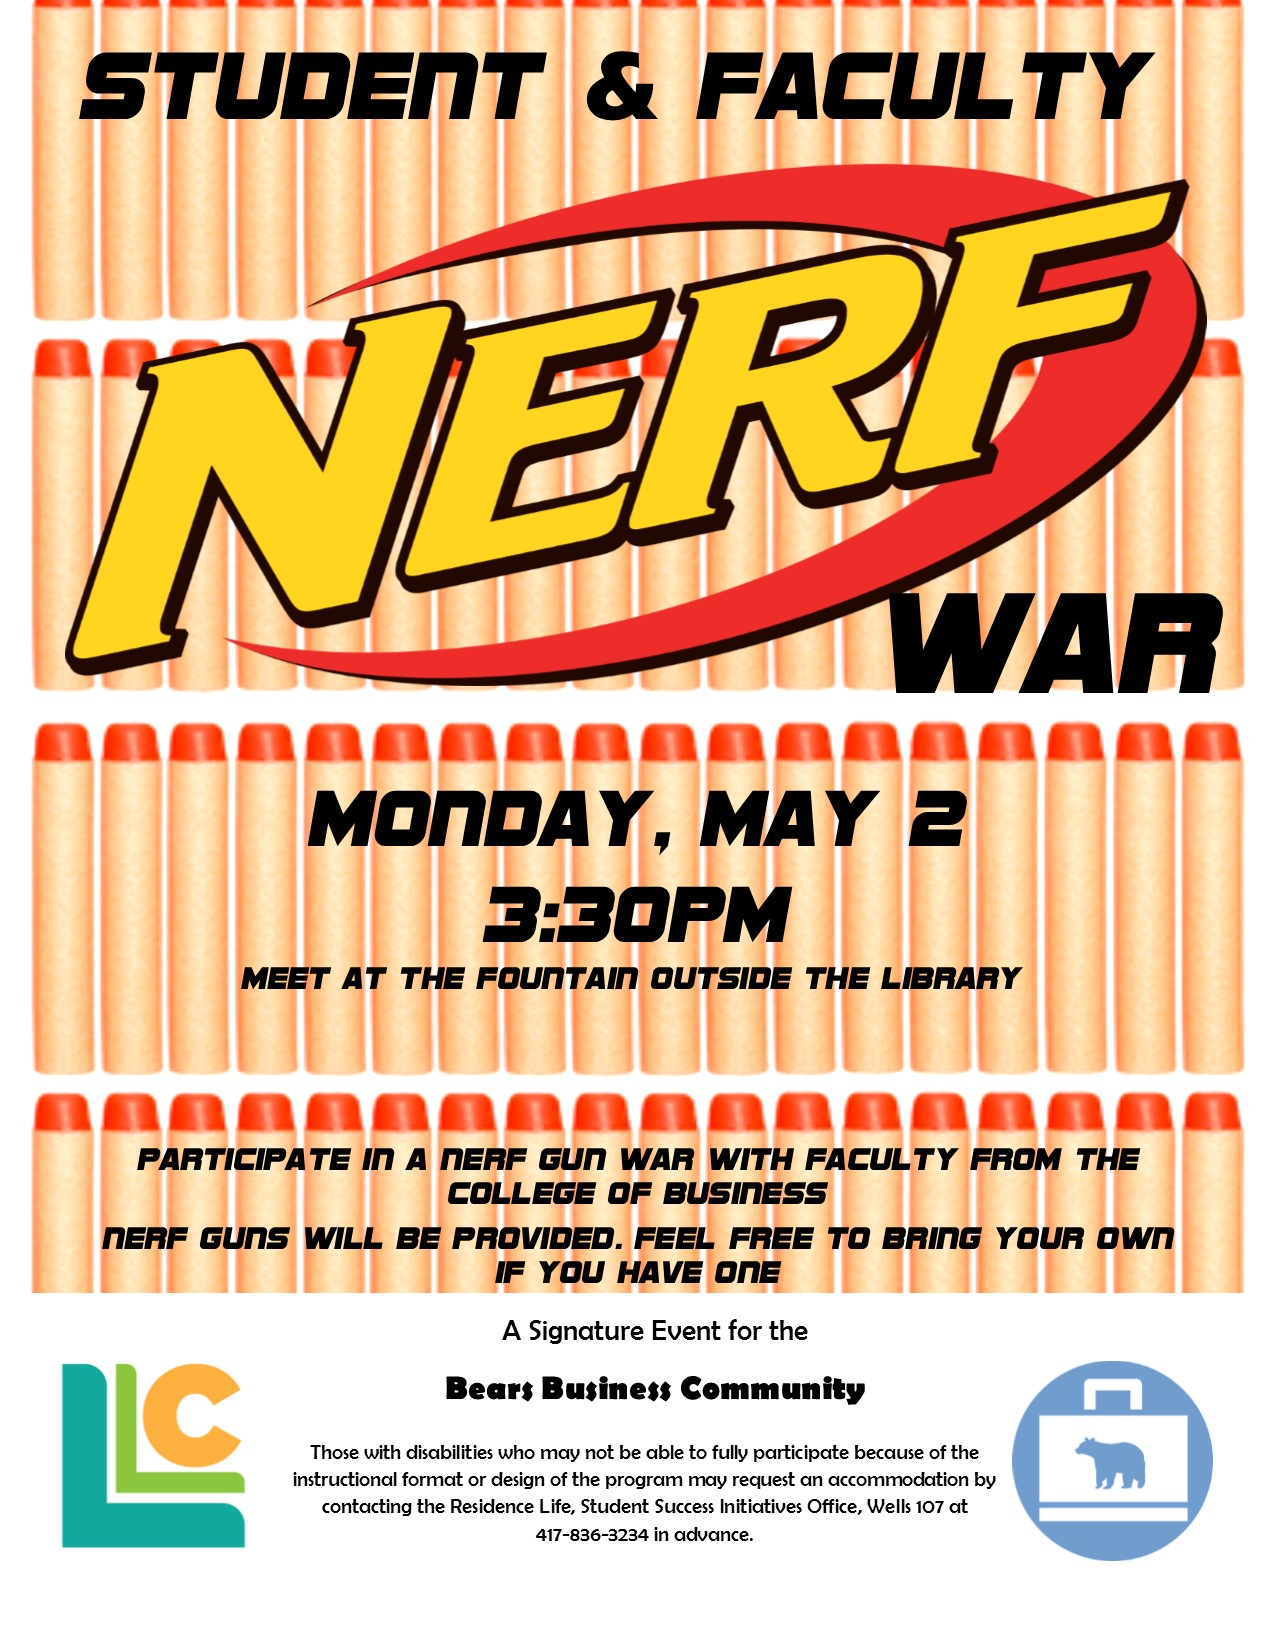 Bears Business LLC Student & Faculty NERF War